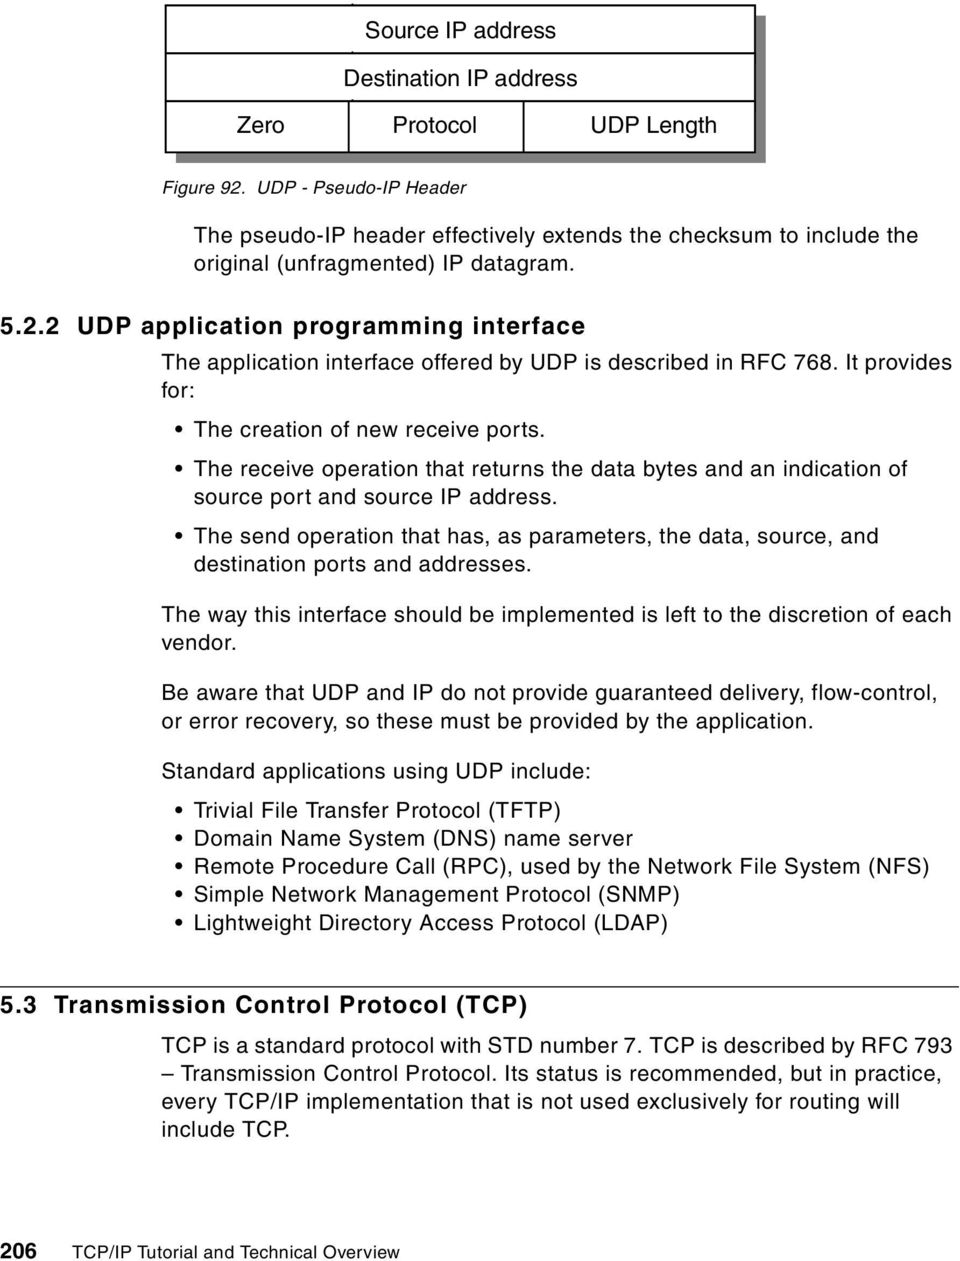 2 UDP application programming interface The application interface offered by UDP is described in RFC 768. It provides for: The creation of new receive ports.